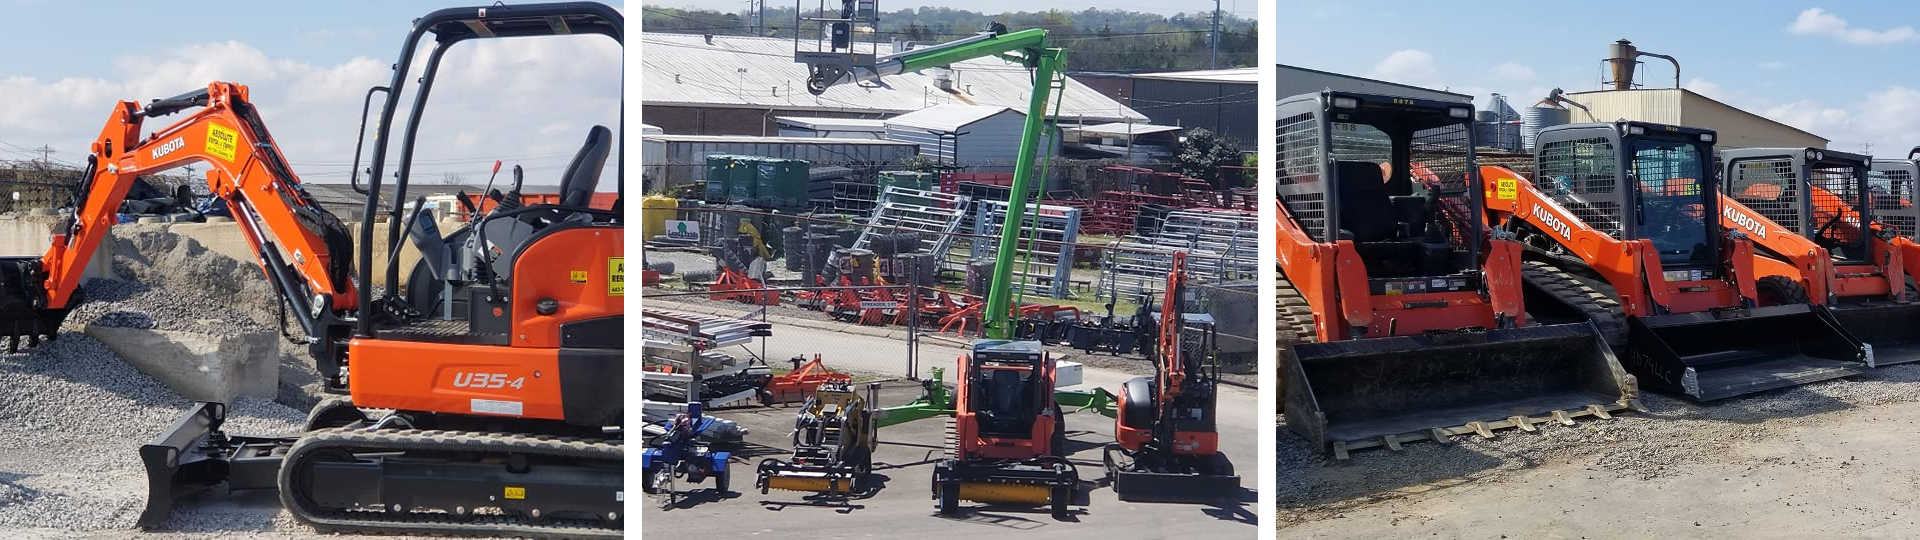 Equipment Rentals in Lebanon